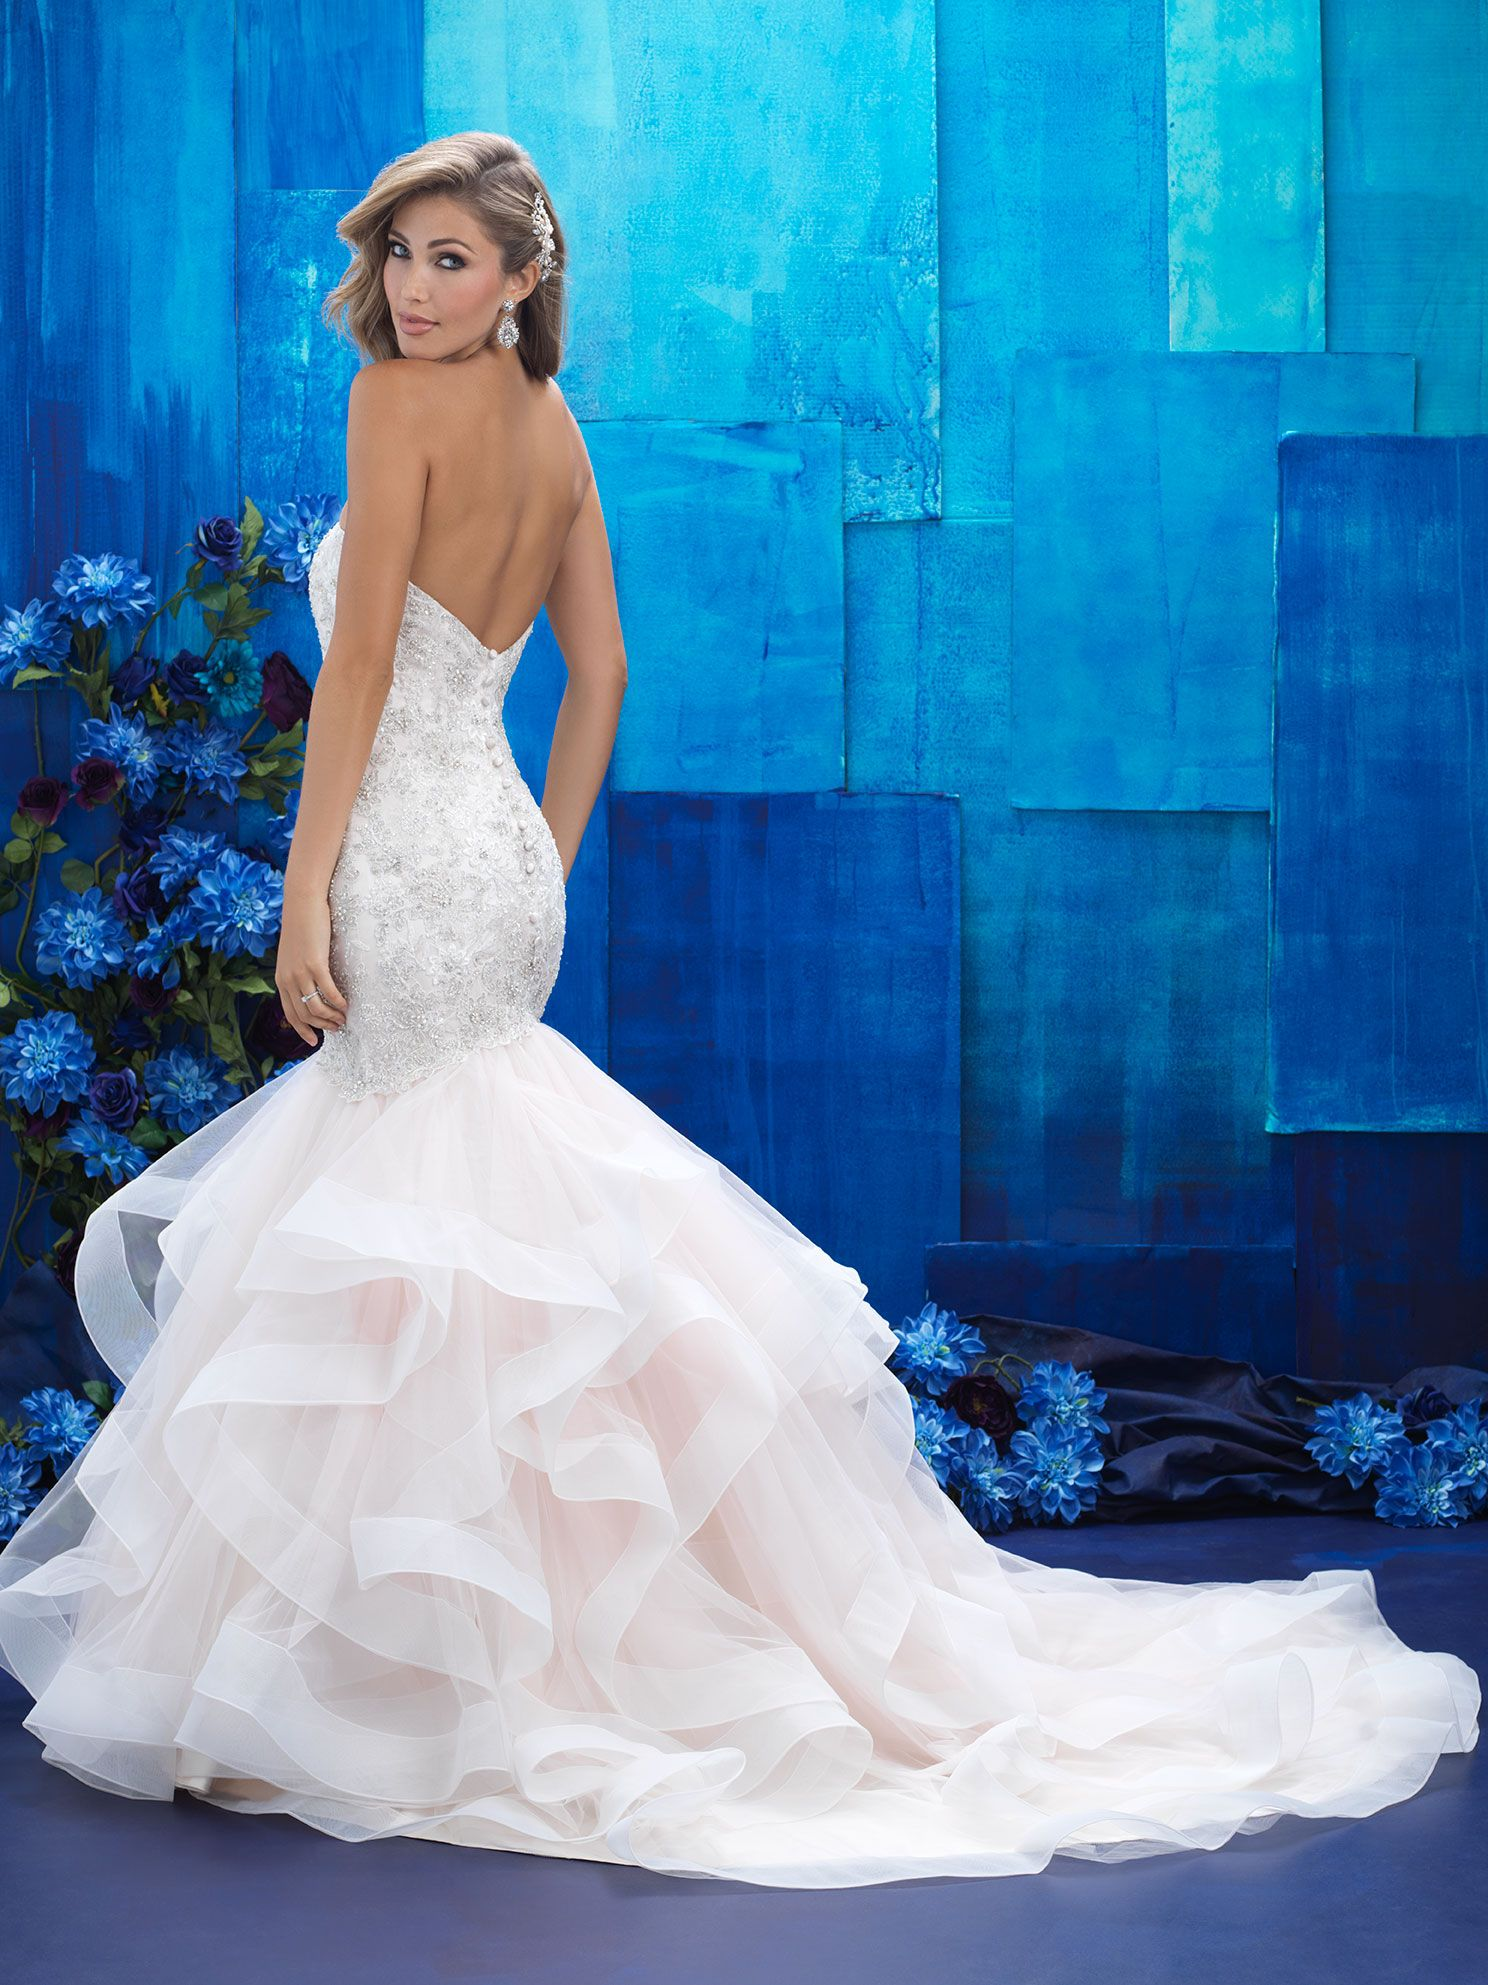 Pin by Janene\'s Bridal Boutique on Allure Bridal in 2018 | Pinterest ...